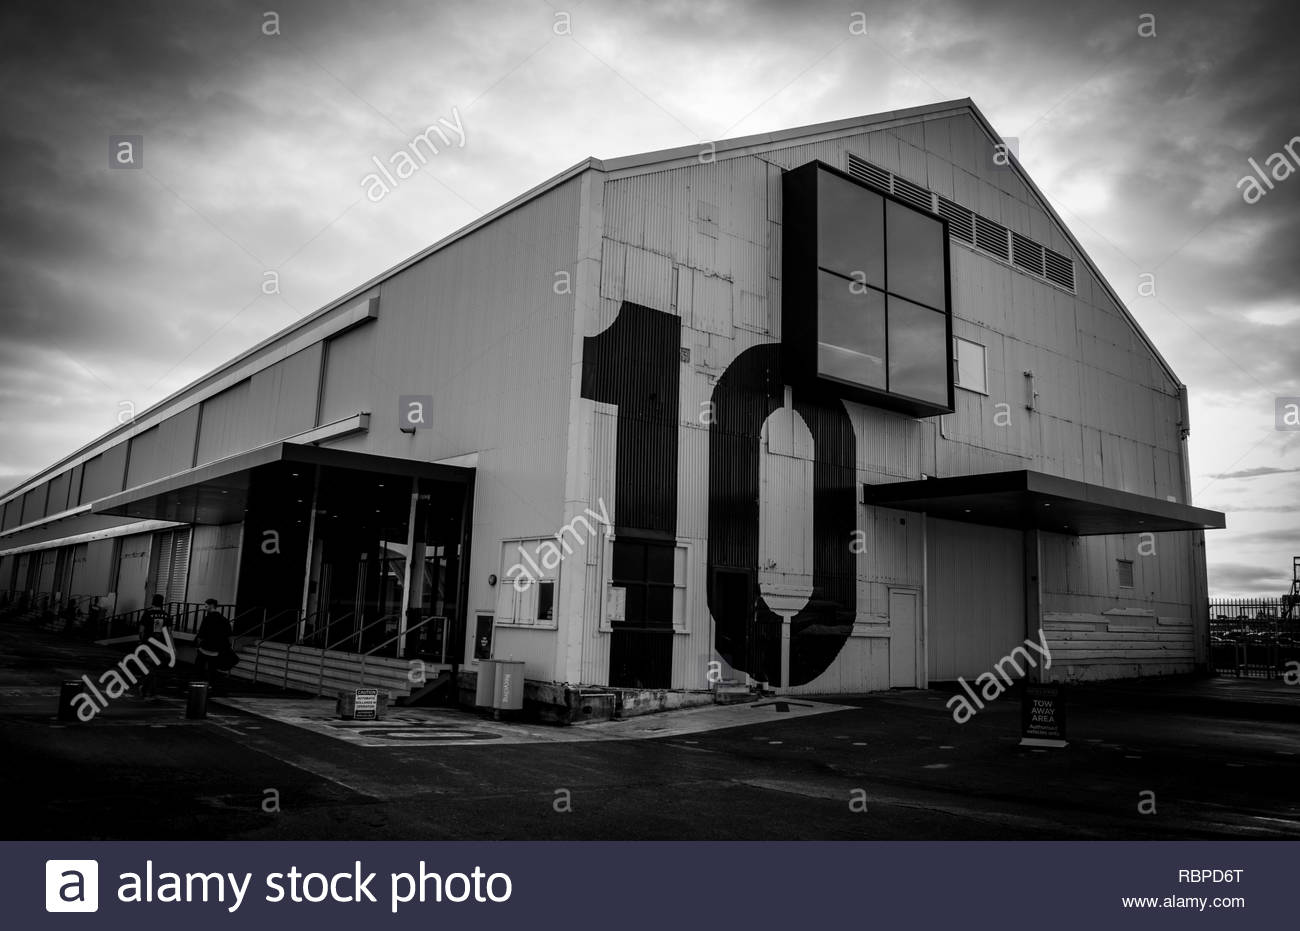 Shed 10, Auckland - Stock Image